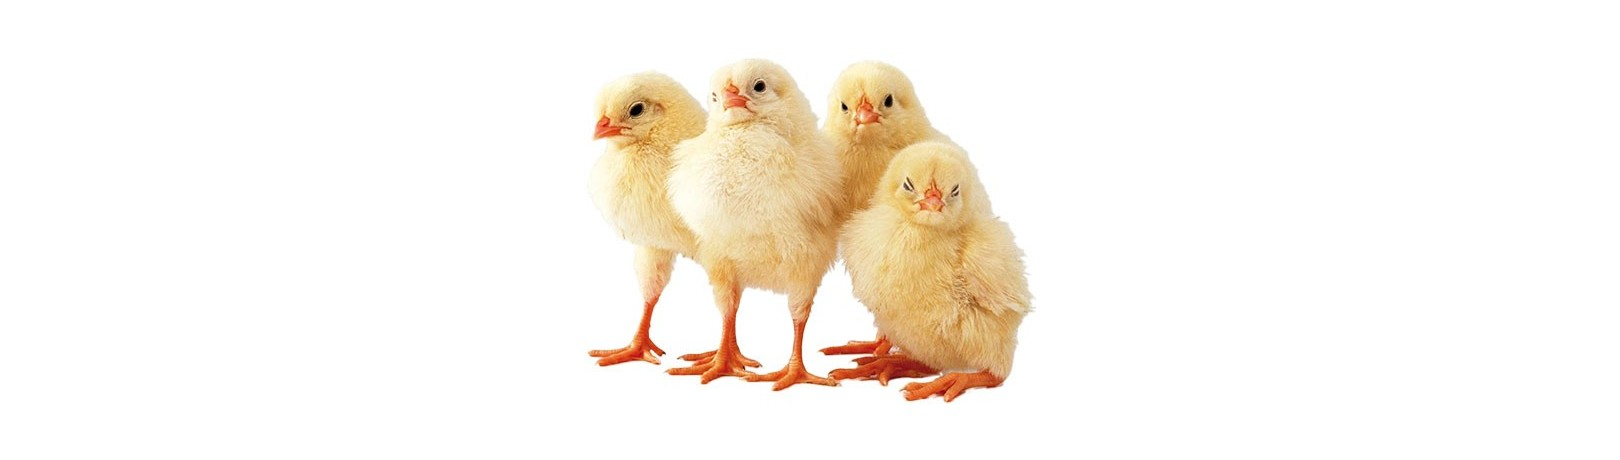 Industrial Poultry Farming Products Manufacturer